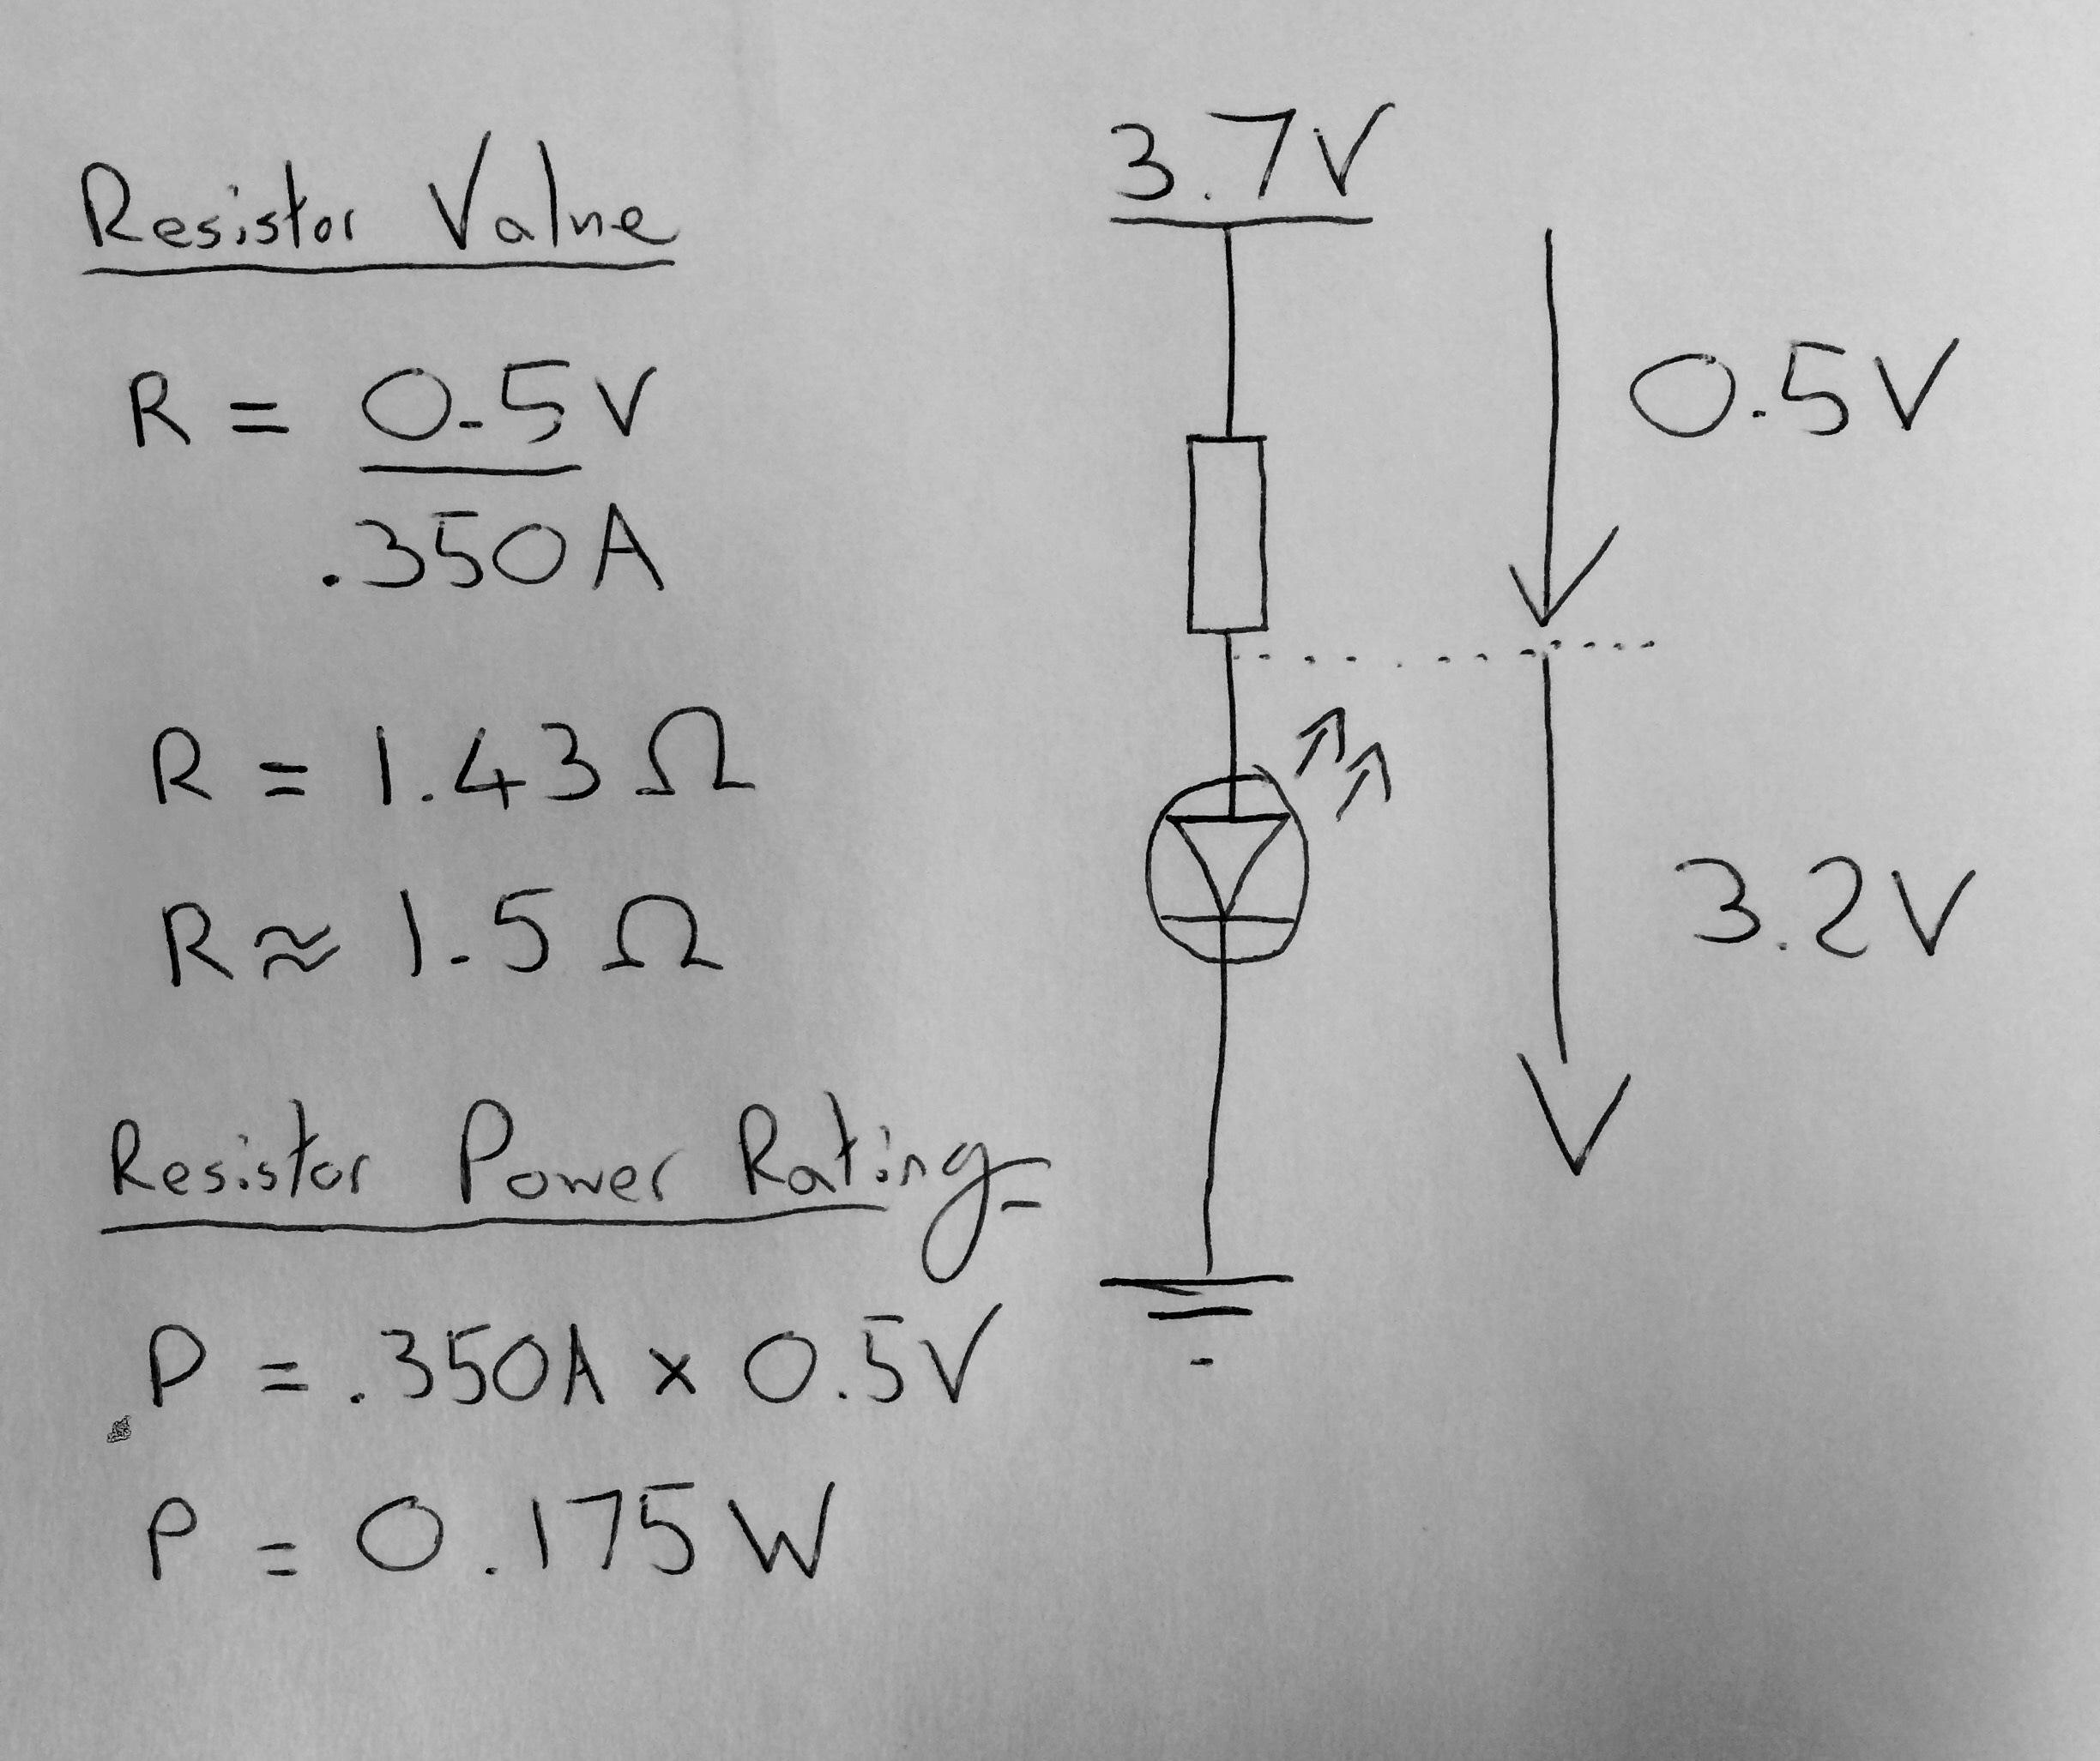 Voltage Leds Resistor Calculator Electronics Auto Electrical Calculatorfreeledcalculadora Xtronic Free Electronic Circuits Led Circuit And Recommendations